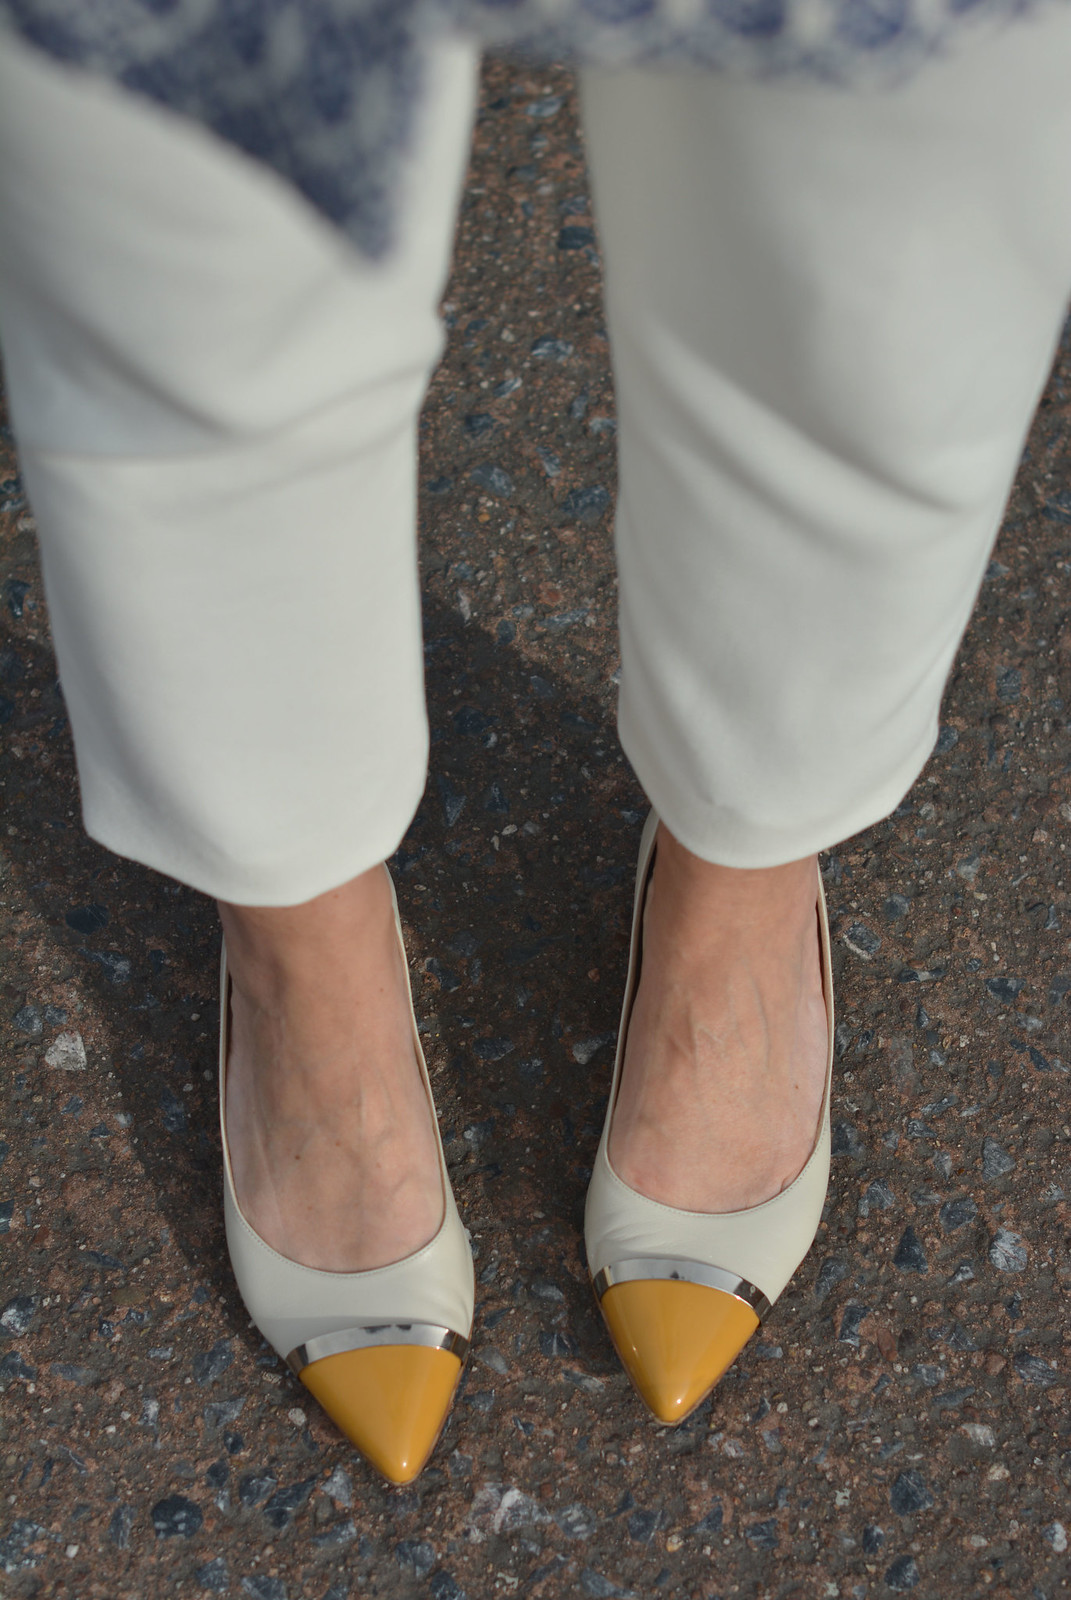 White cropped trousers, yellow/cream pointed fats | Not Dressed As Lamb